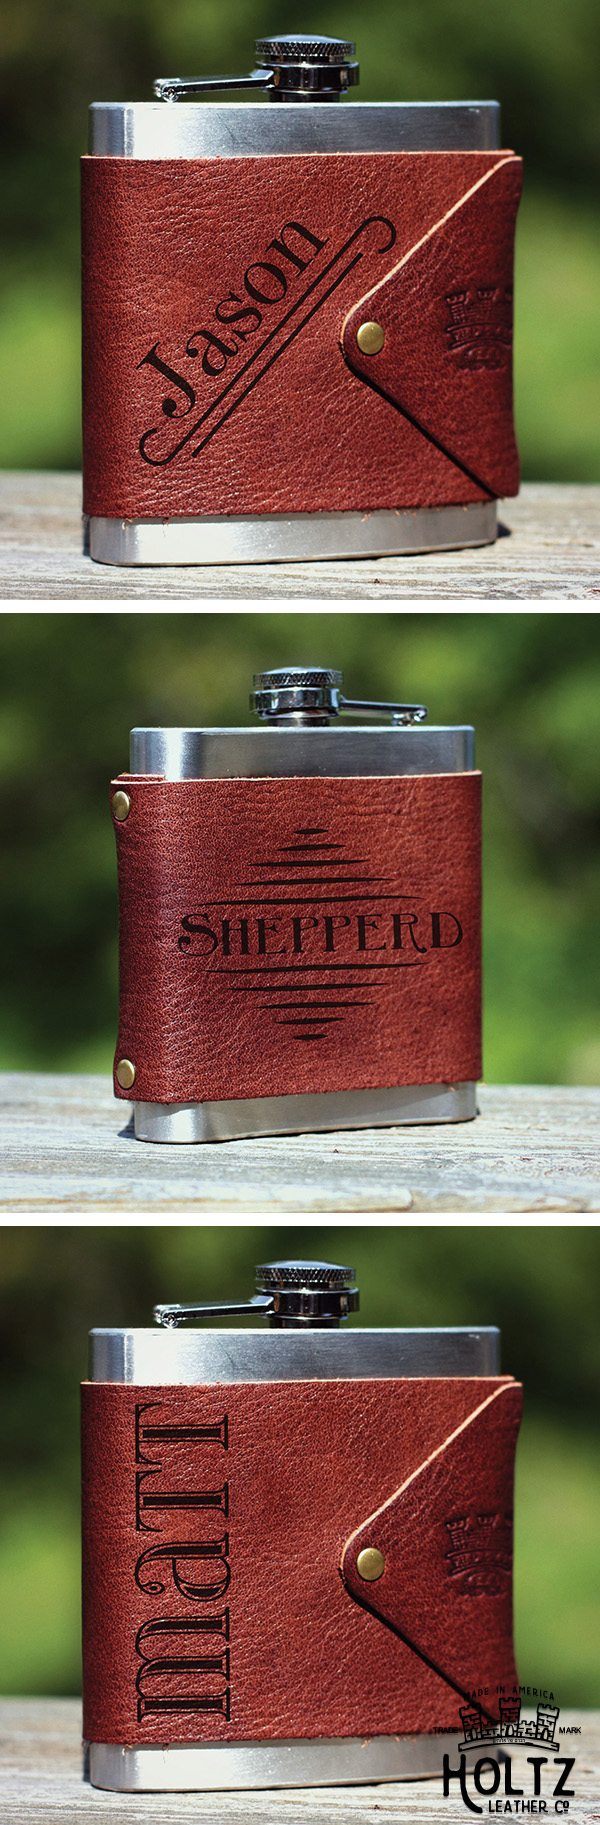 Toast to your groomsmen for sticking by your side with the Hatch Flask Wrap.  This unique design features their names and keeps their flasks cozy.  This gift includes the wrap and a standard 6 fl oz. flask.